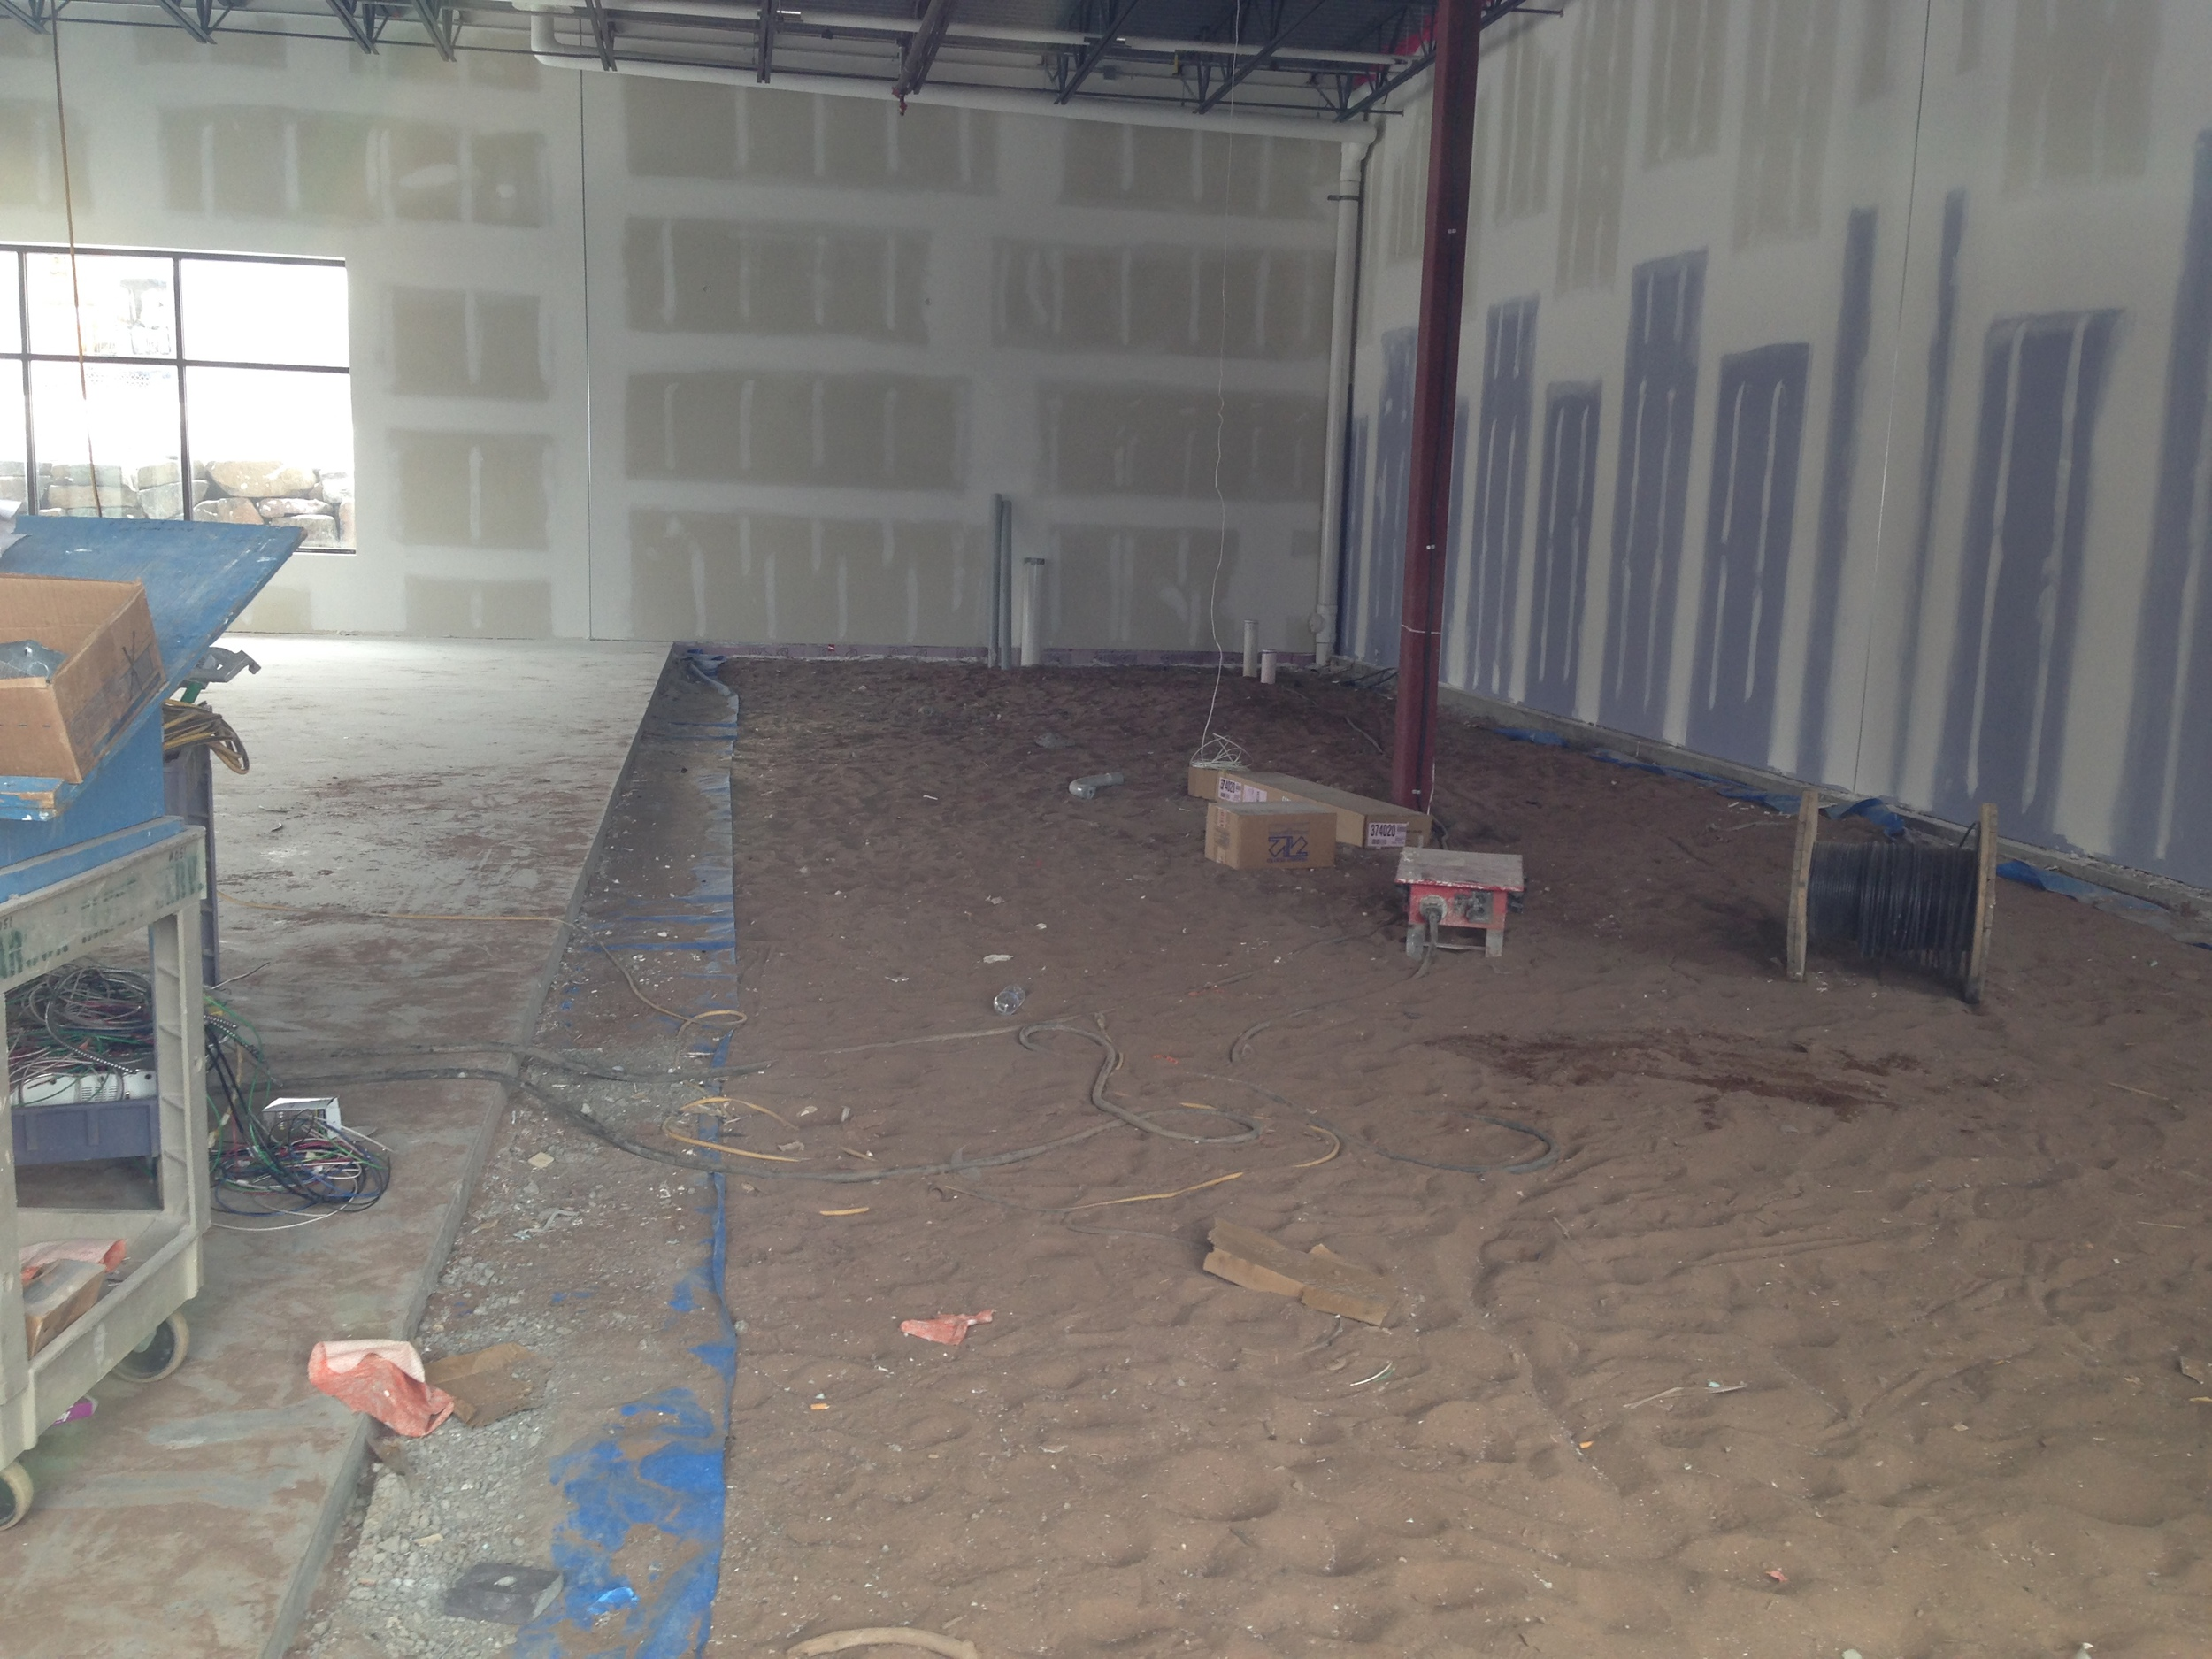 Current state of the new Qdoba location.